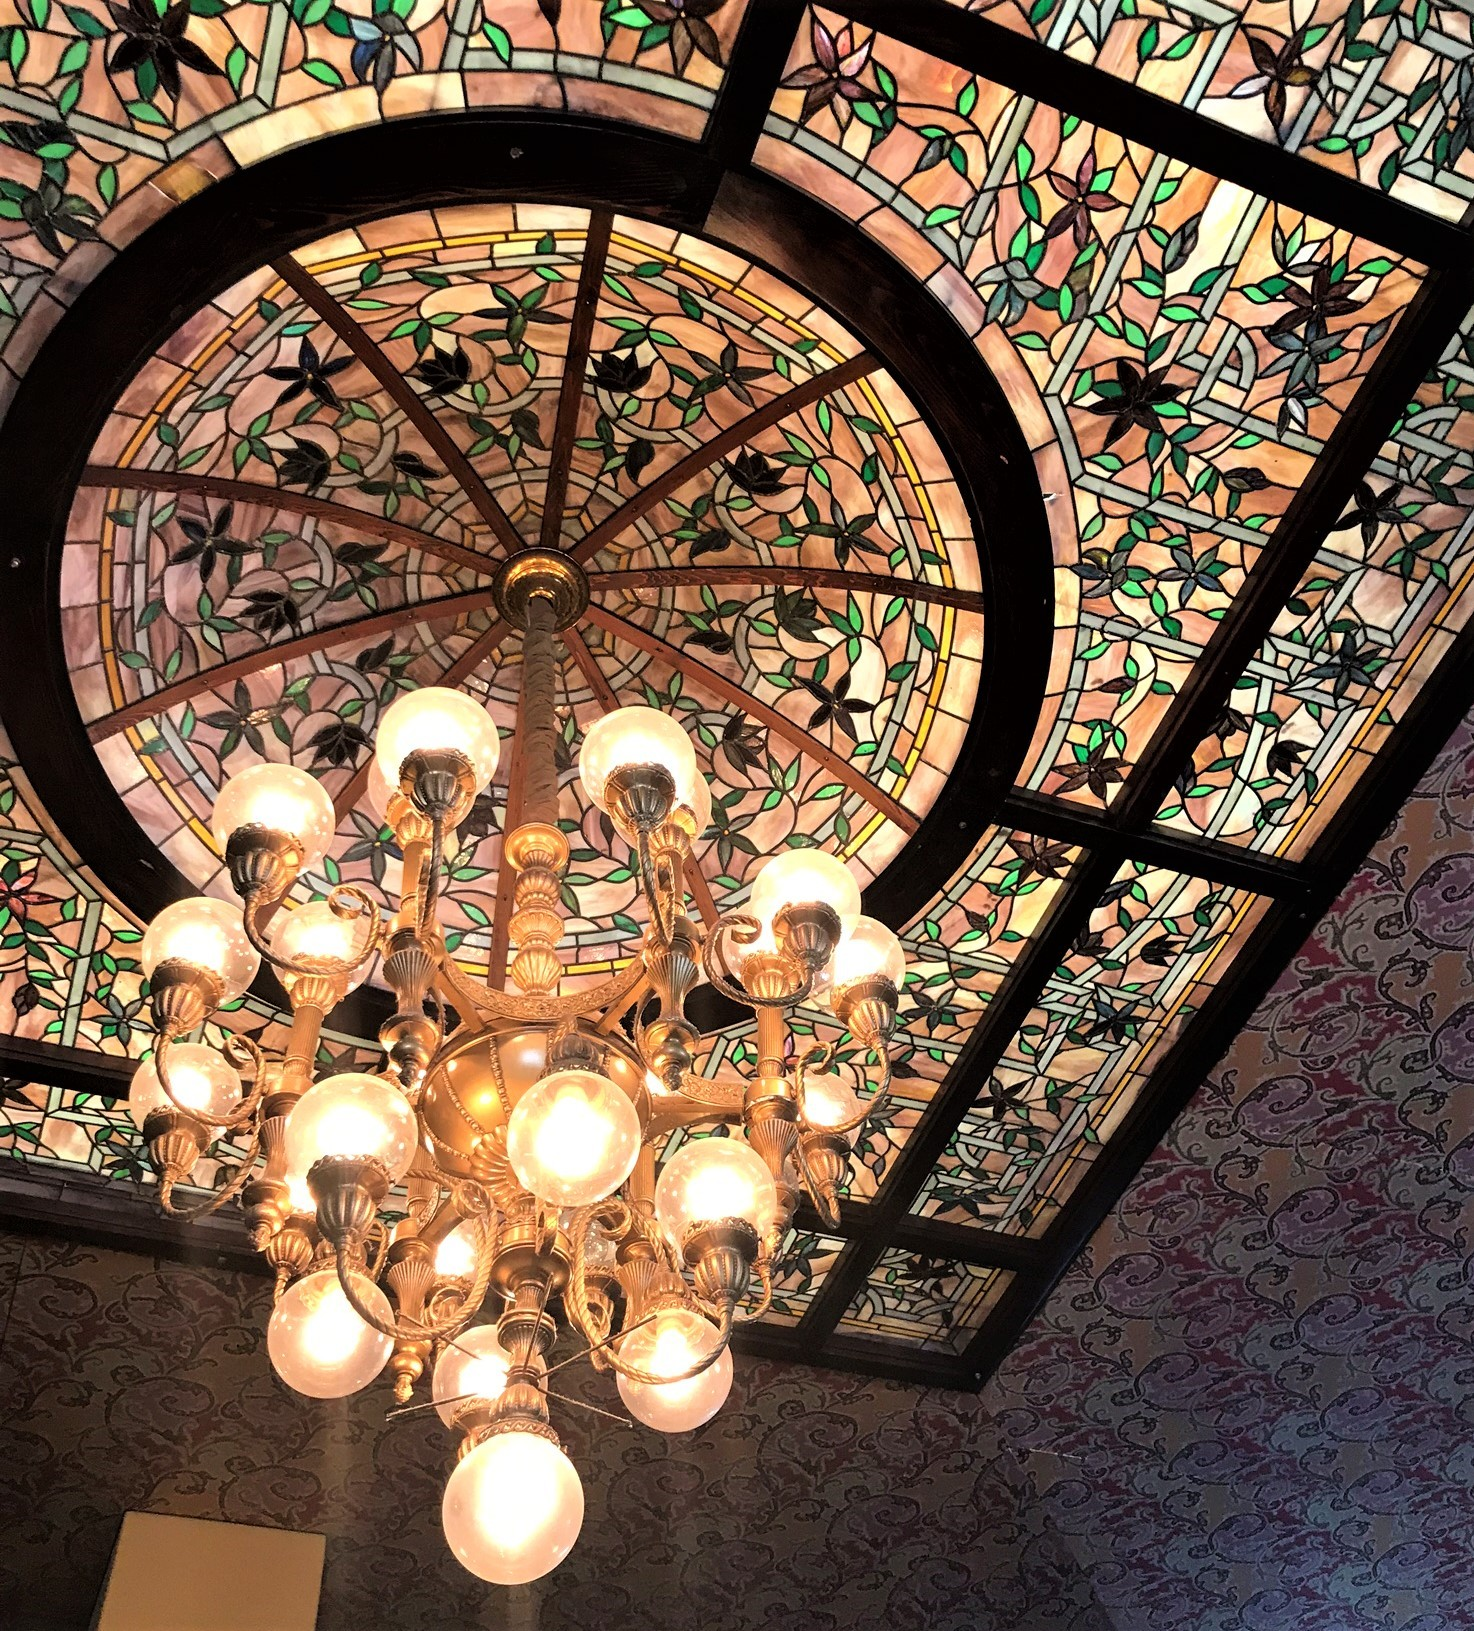 stained glass ceiling and lighting fixture